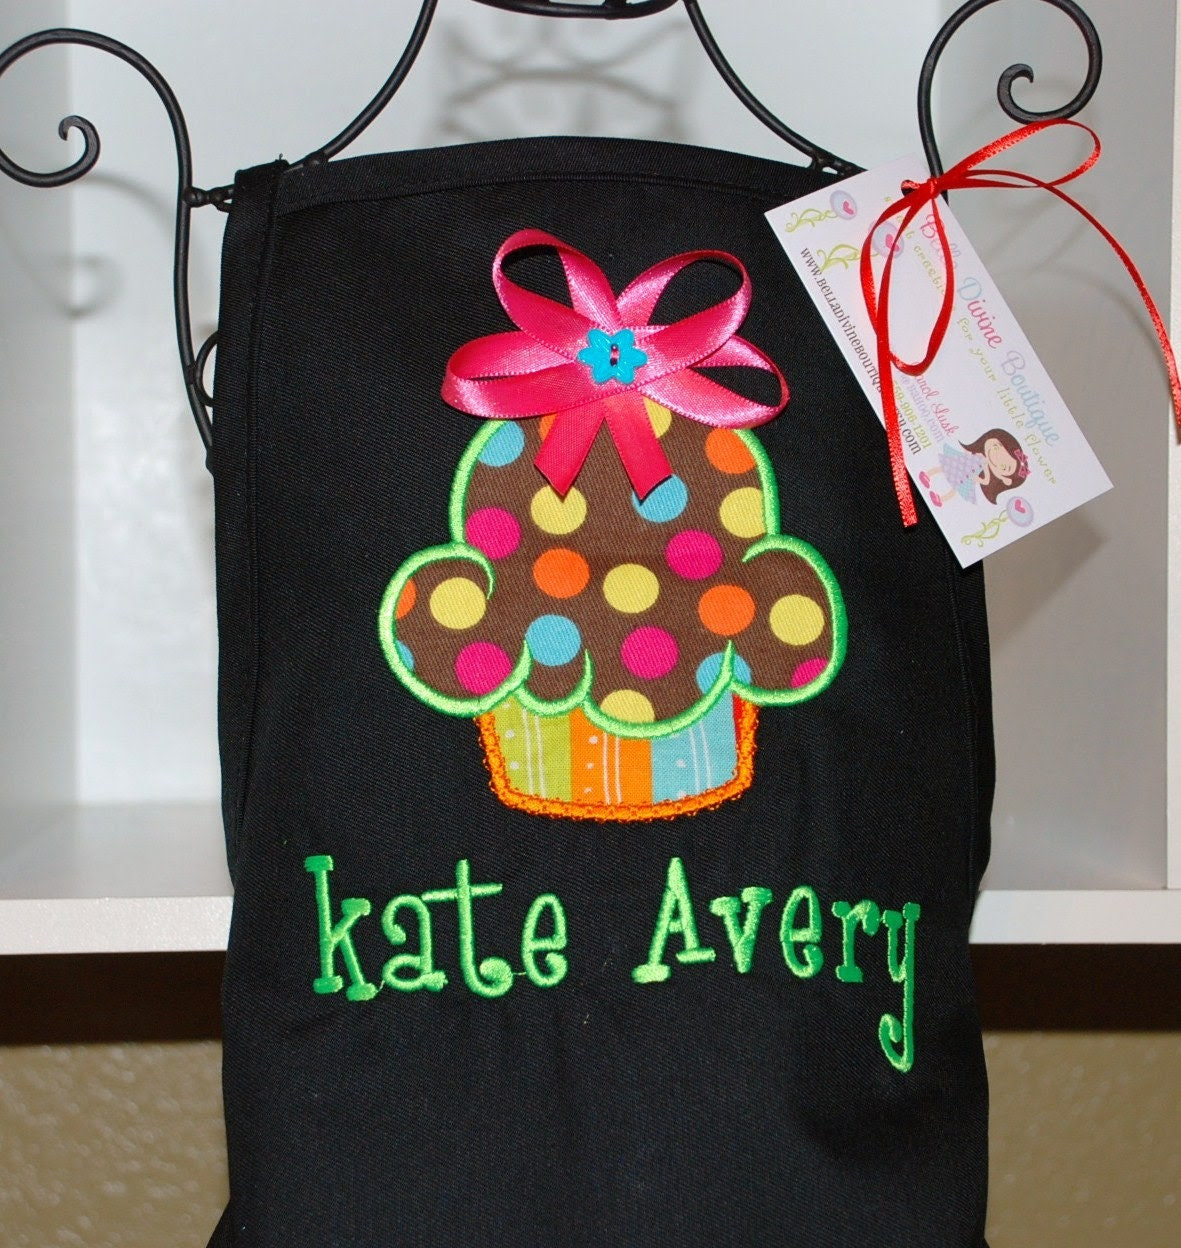 Birthday party personalized aprons special for you little guests